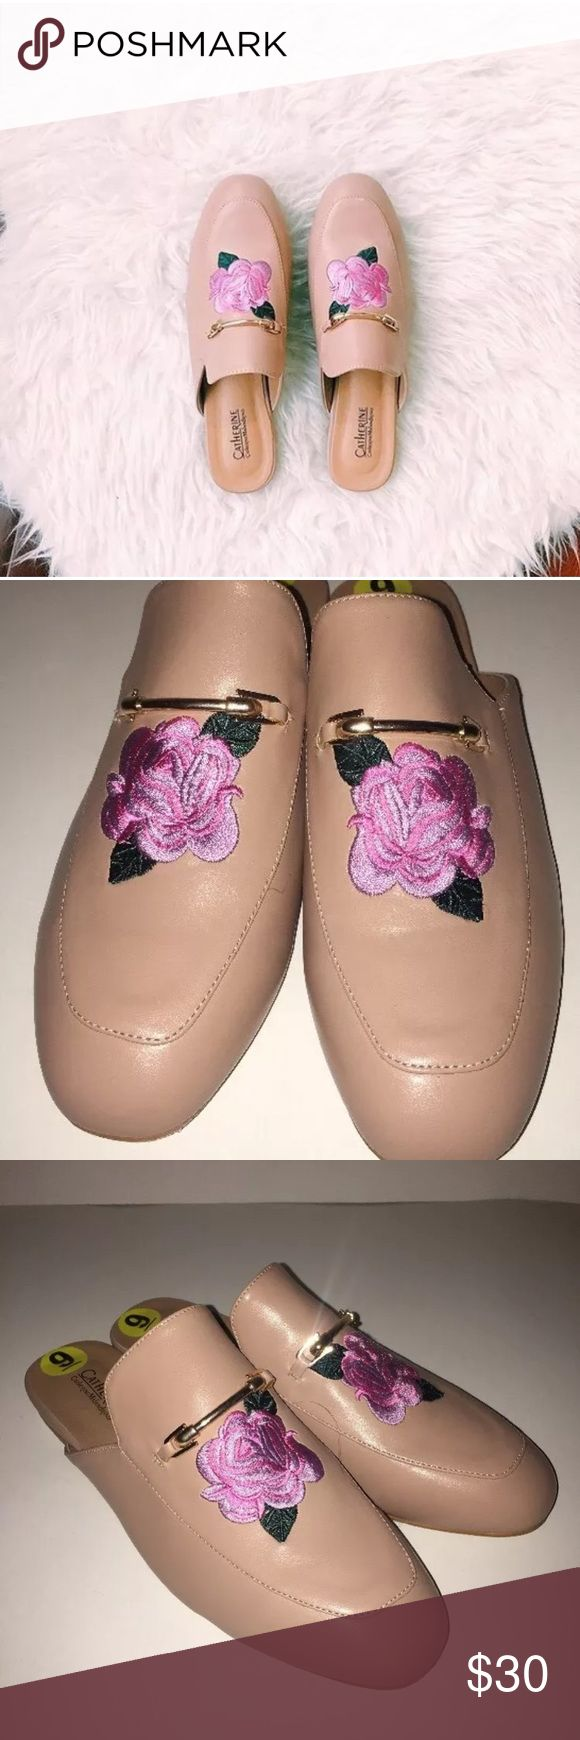 Catherine malandrino blush pink rose mules size 9 Size 9 woman's  Pink  Rose design  New without box Catherine Malandrino Shoes Mules & Clogs